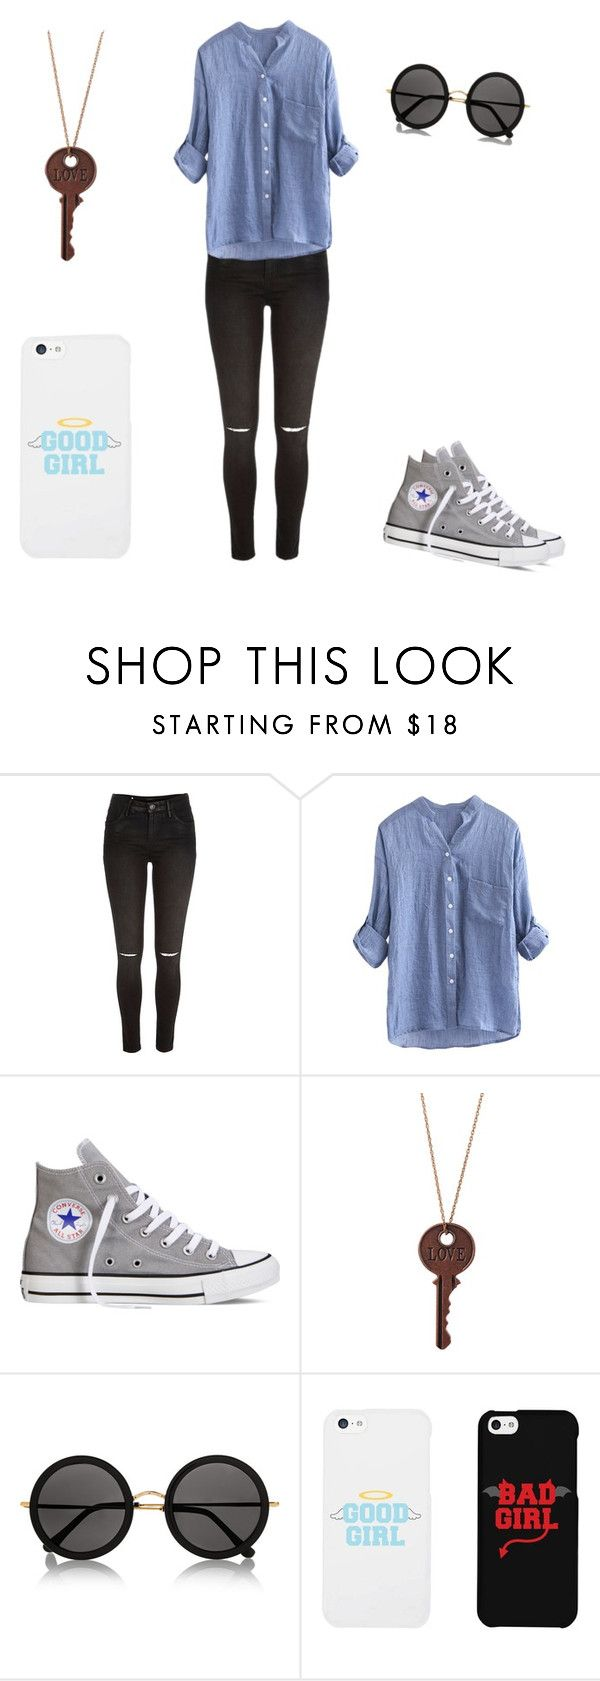 """Monday outfit"" by ryder-13 ❤ liked on Polyvore featuring River Island, Converse, The Row and LG"